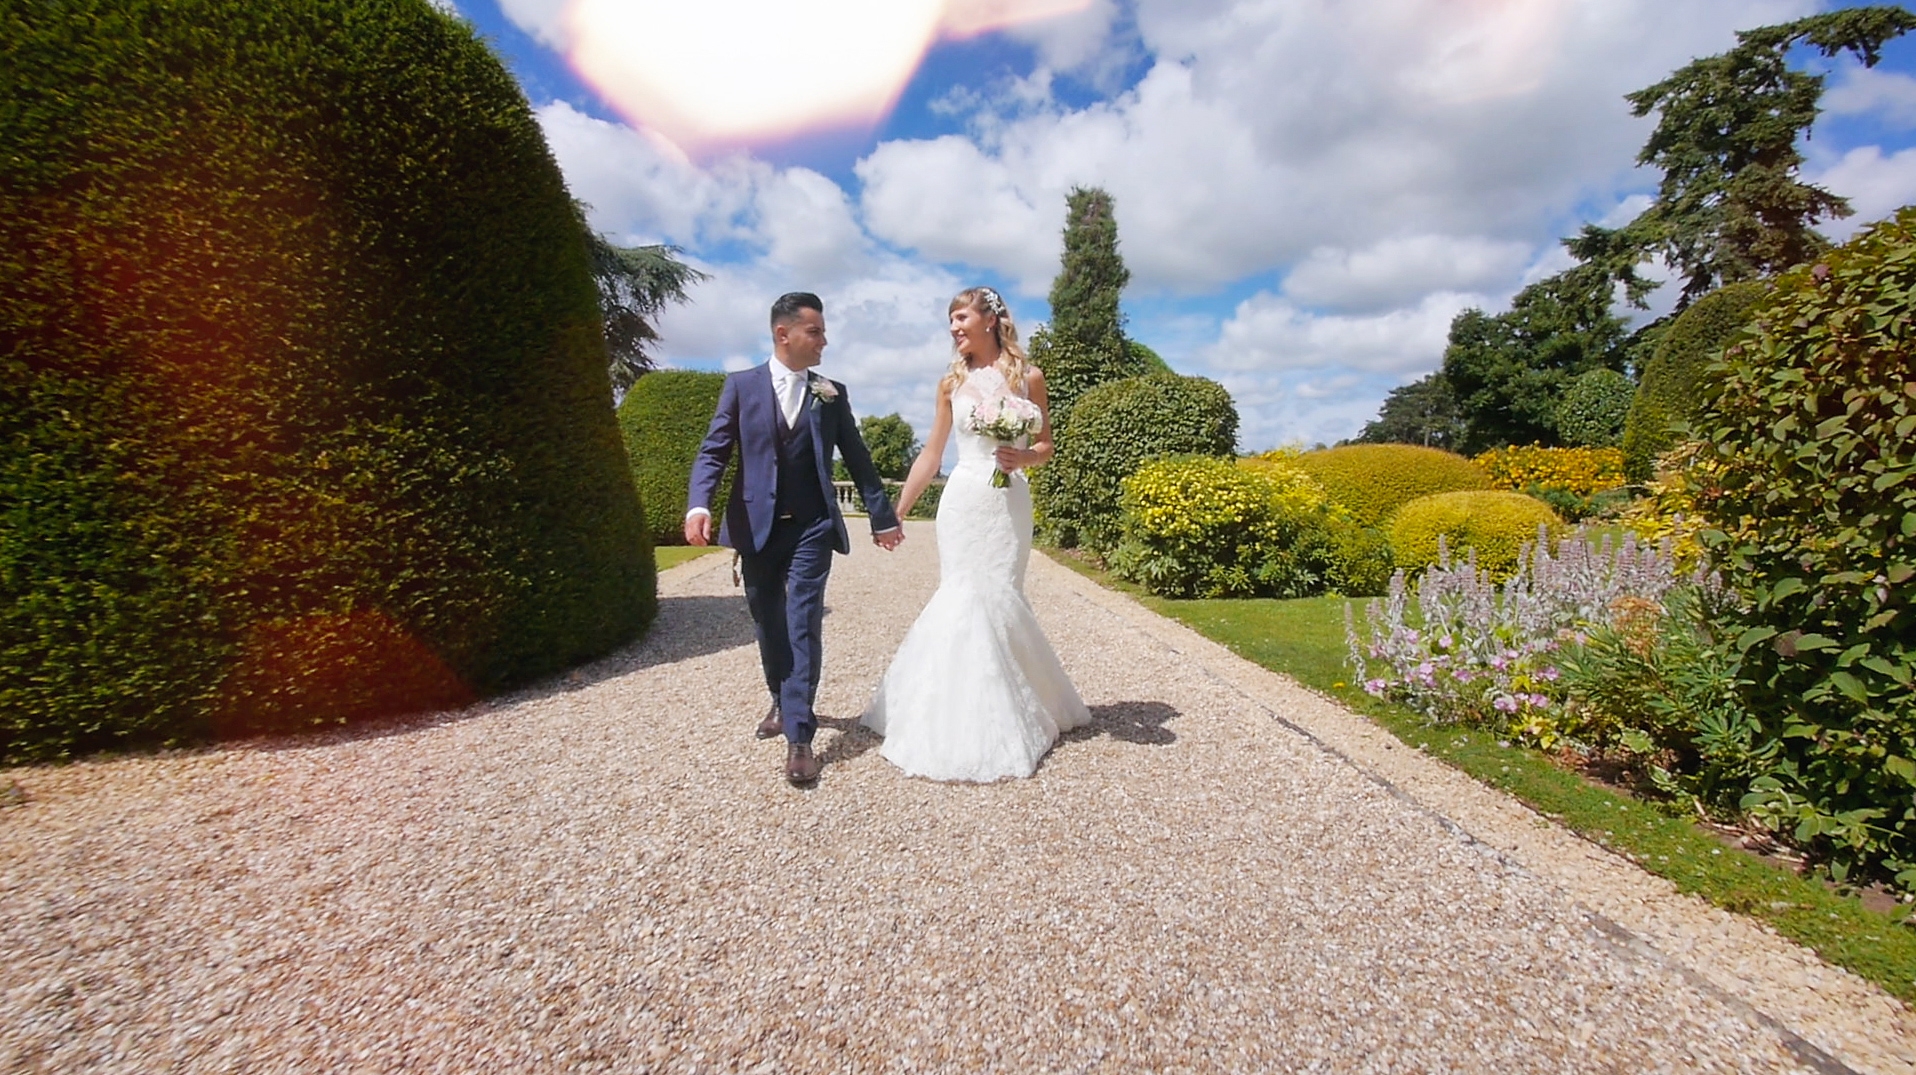 Wedding videography in Hereford